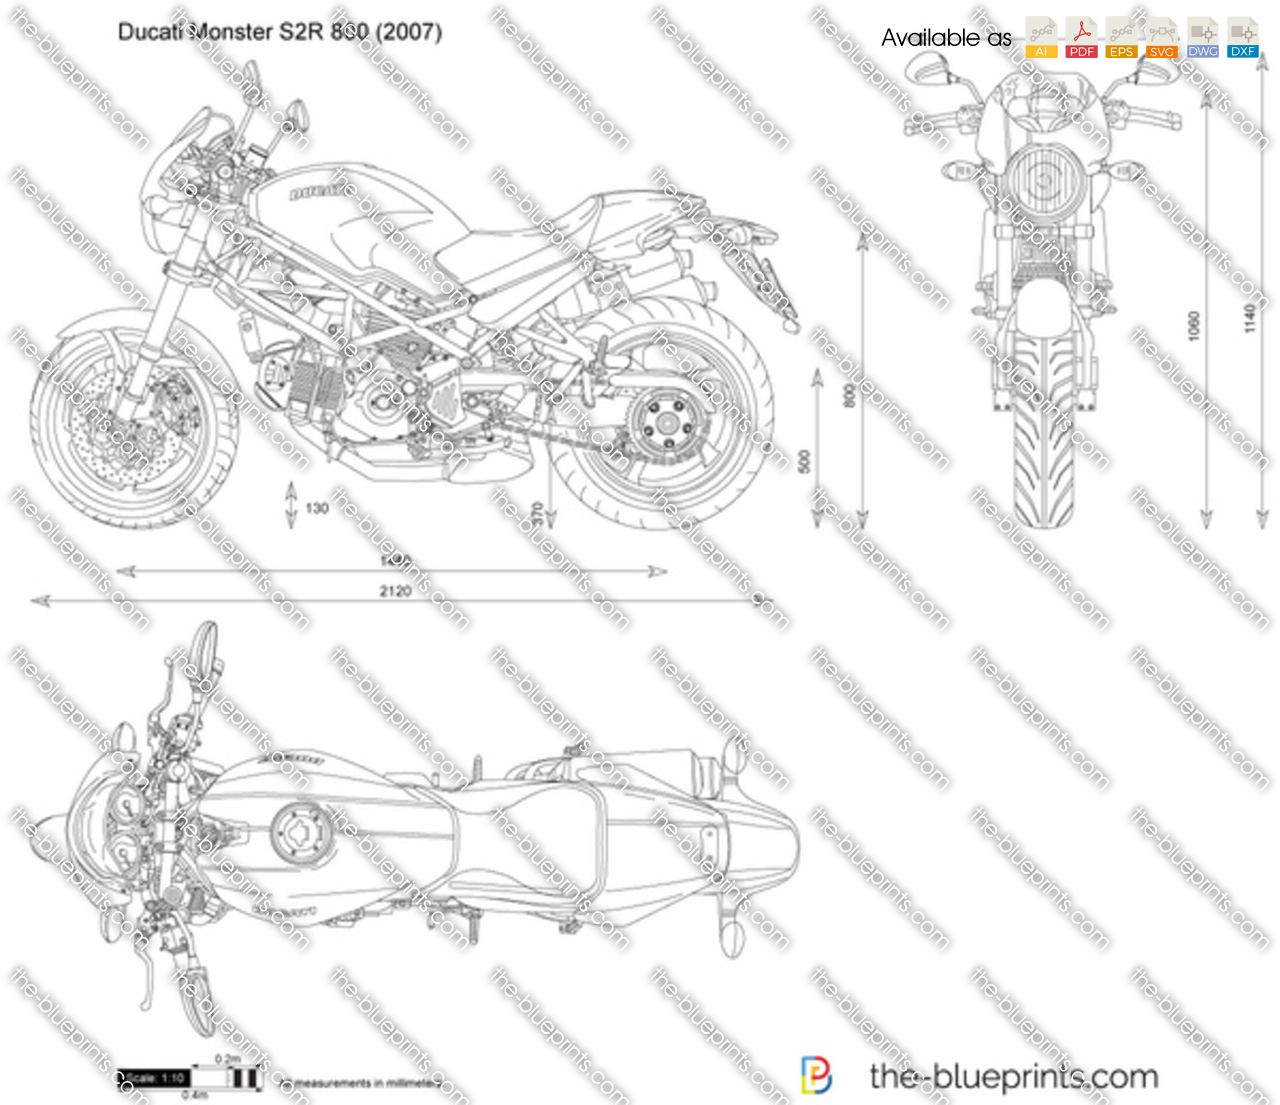 ducati monster s2r 800 vector drawing